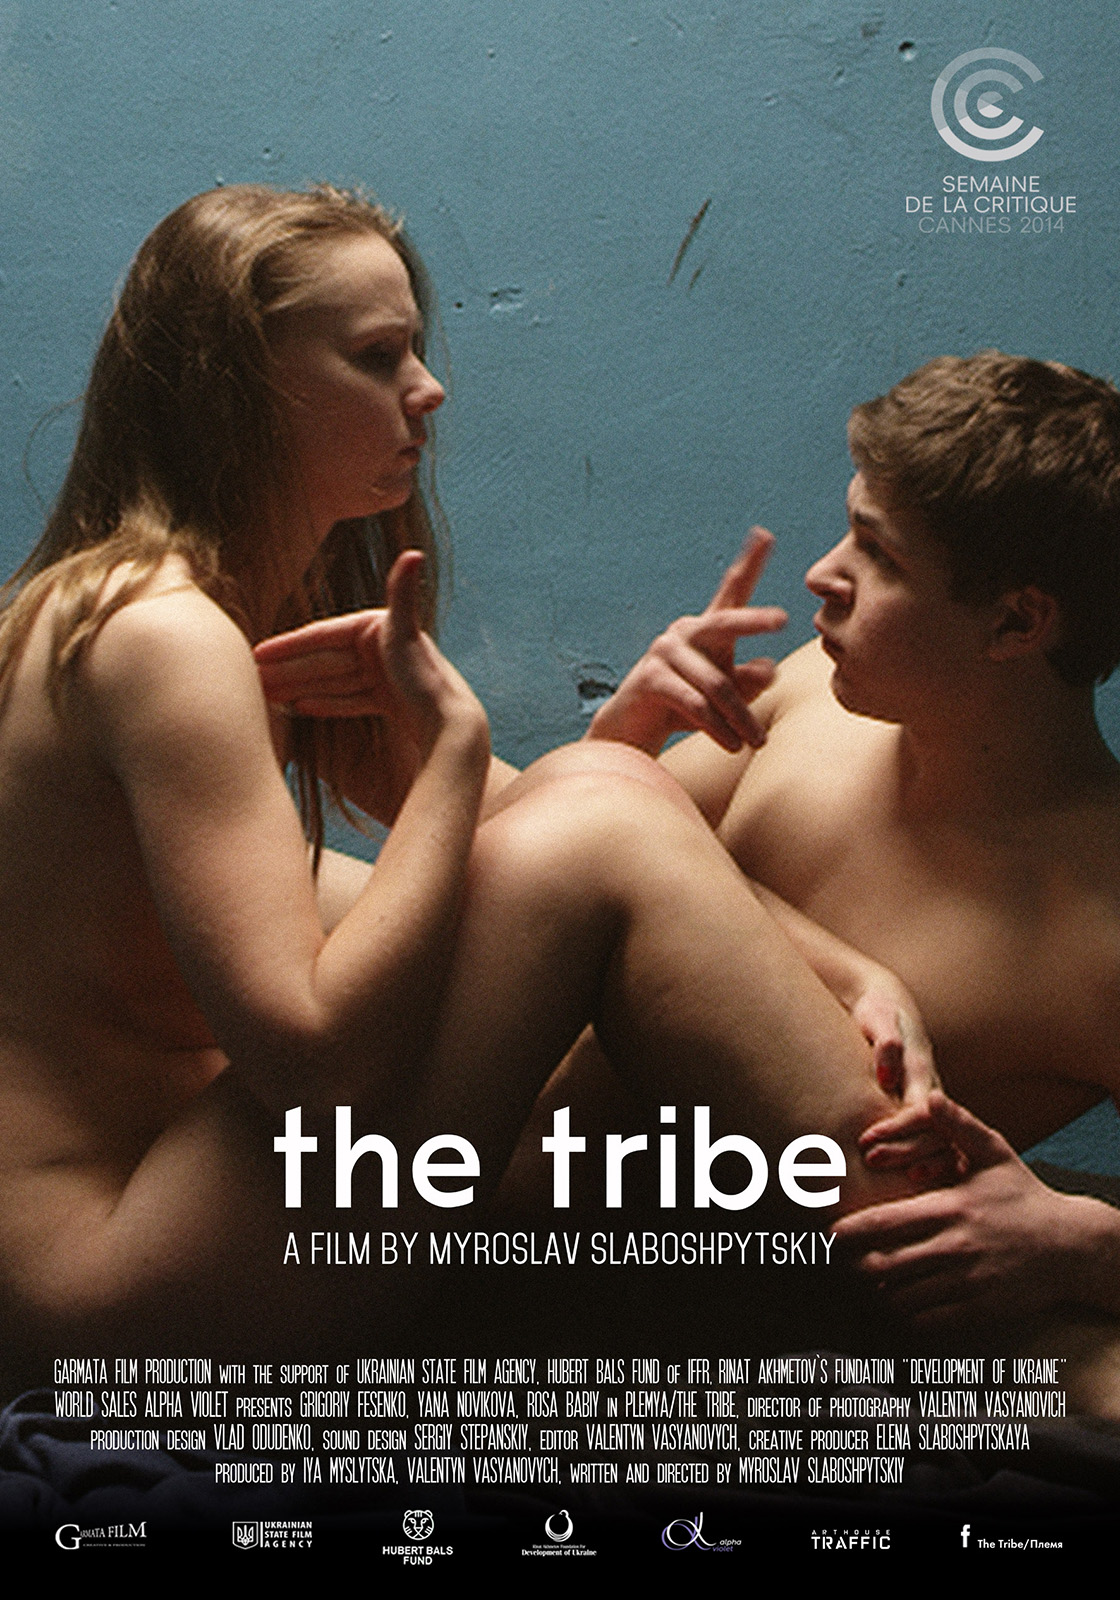 [Critique] The Tribe